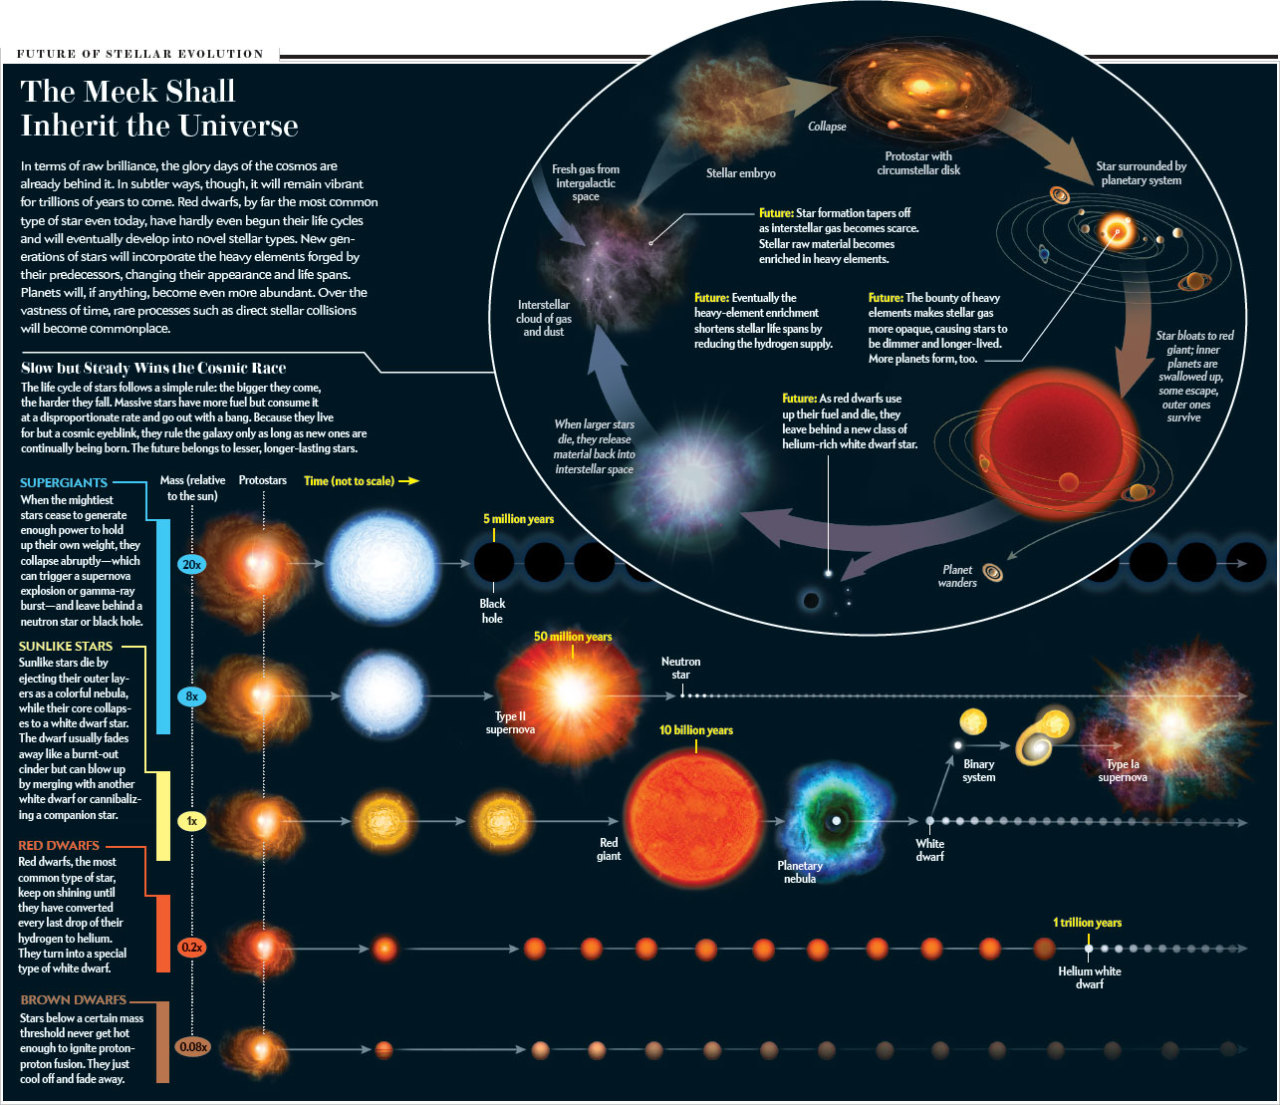 Science Visualized The Future Of Stellar Evolution The